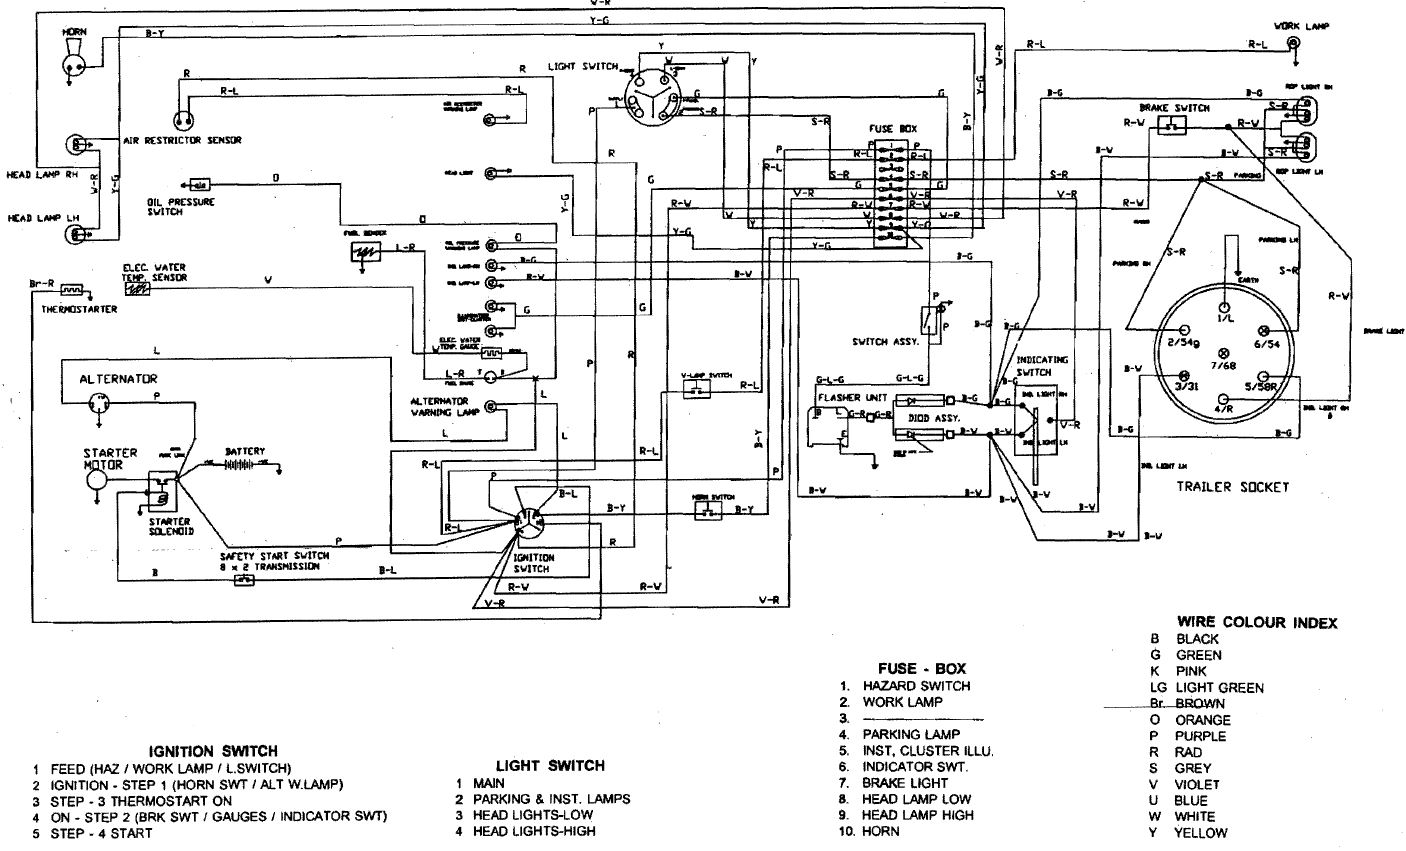 hight resolution of jd 2520 wiring diagram wiring diagram detailed john deere 2640 wiring diagram jd 1020 wiring diagram